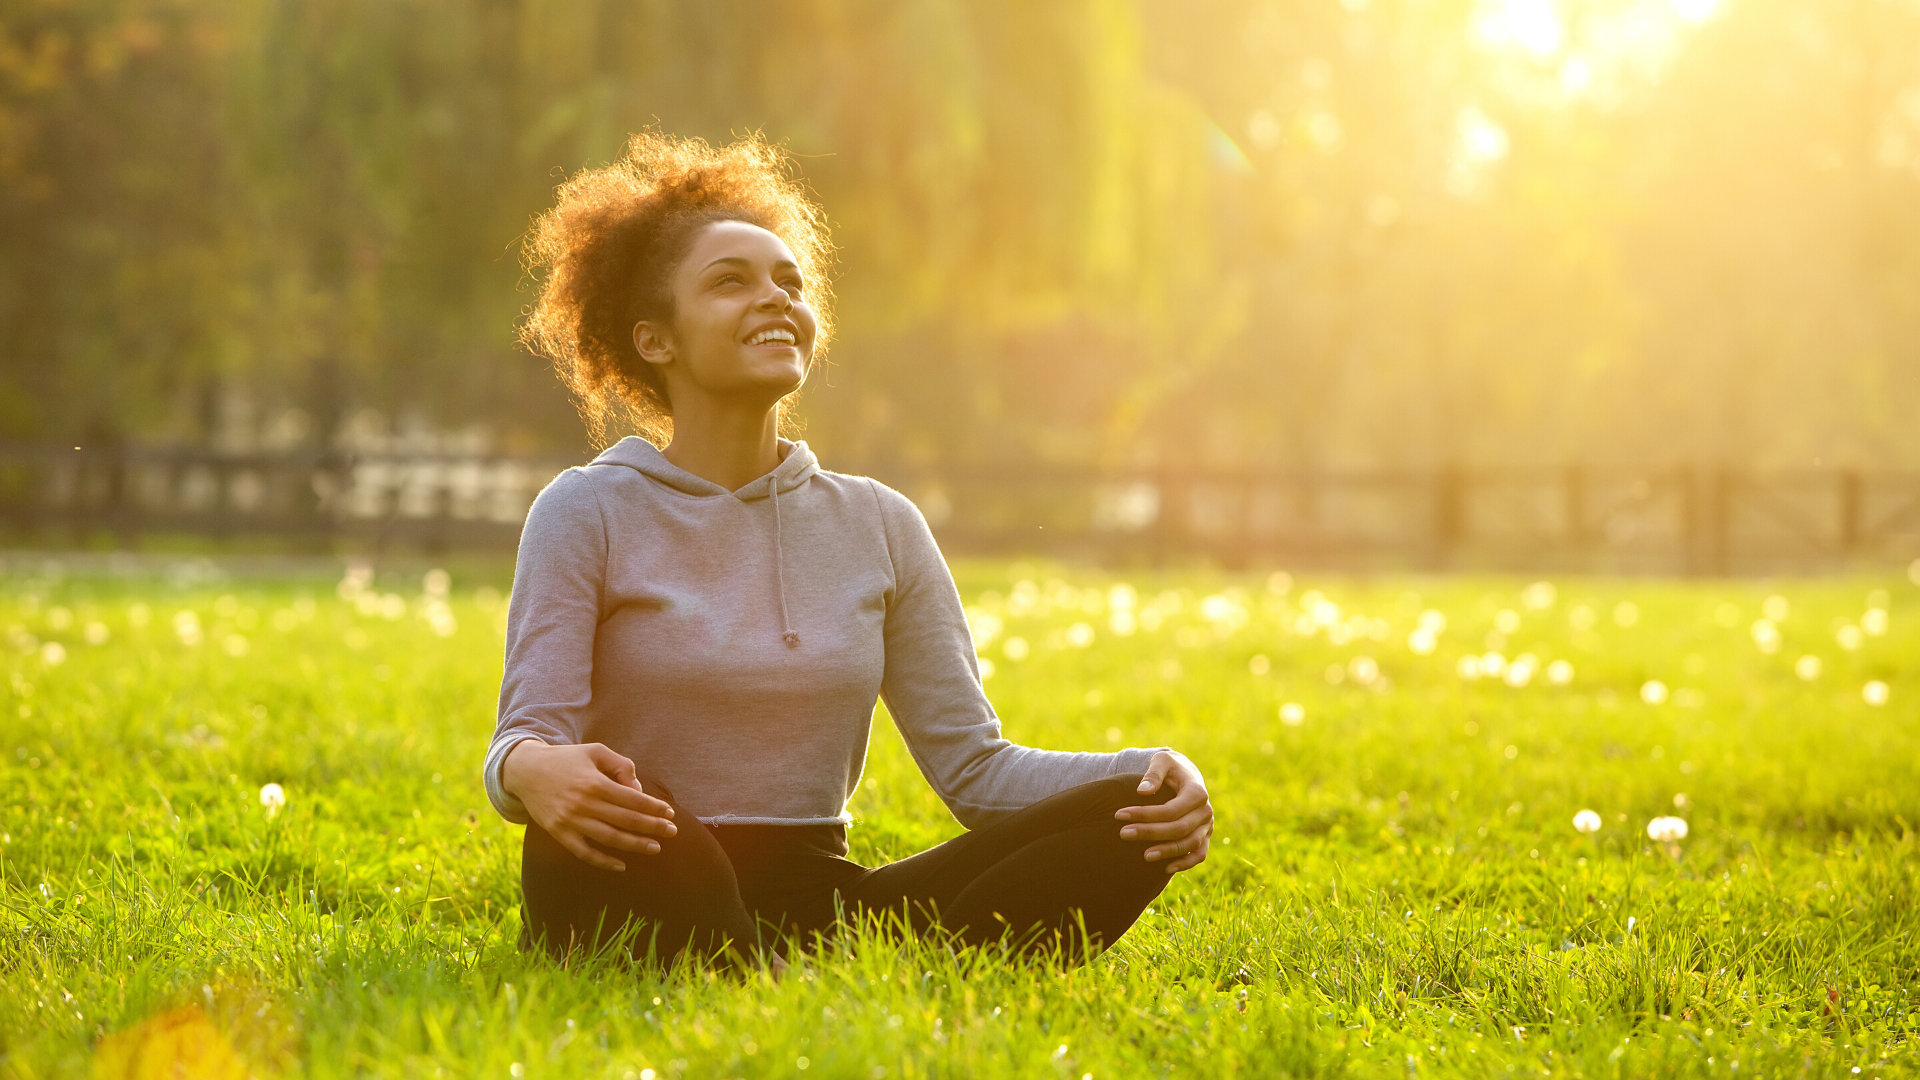 Young woman happily sitting outside in beautiful field.